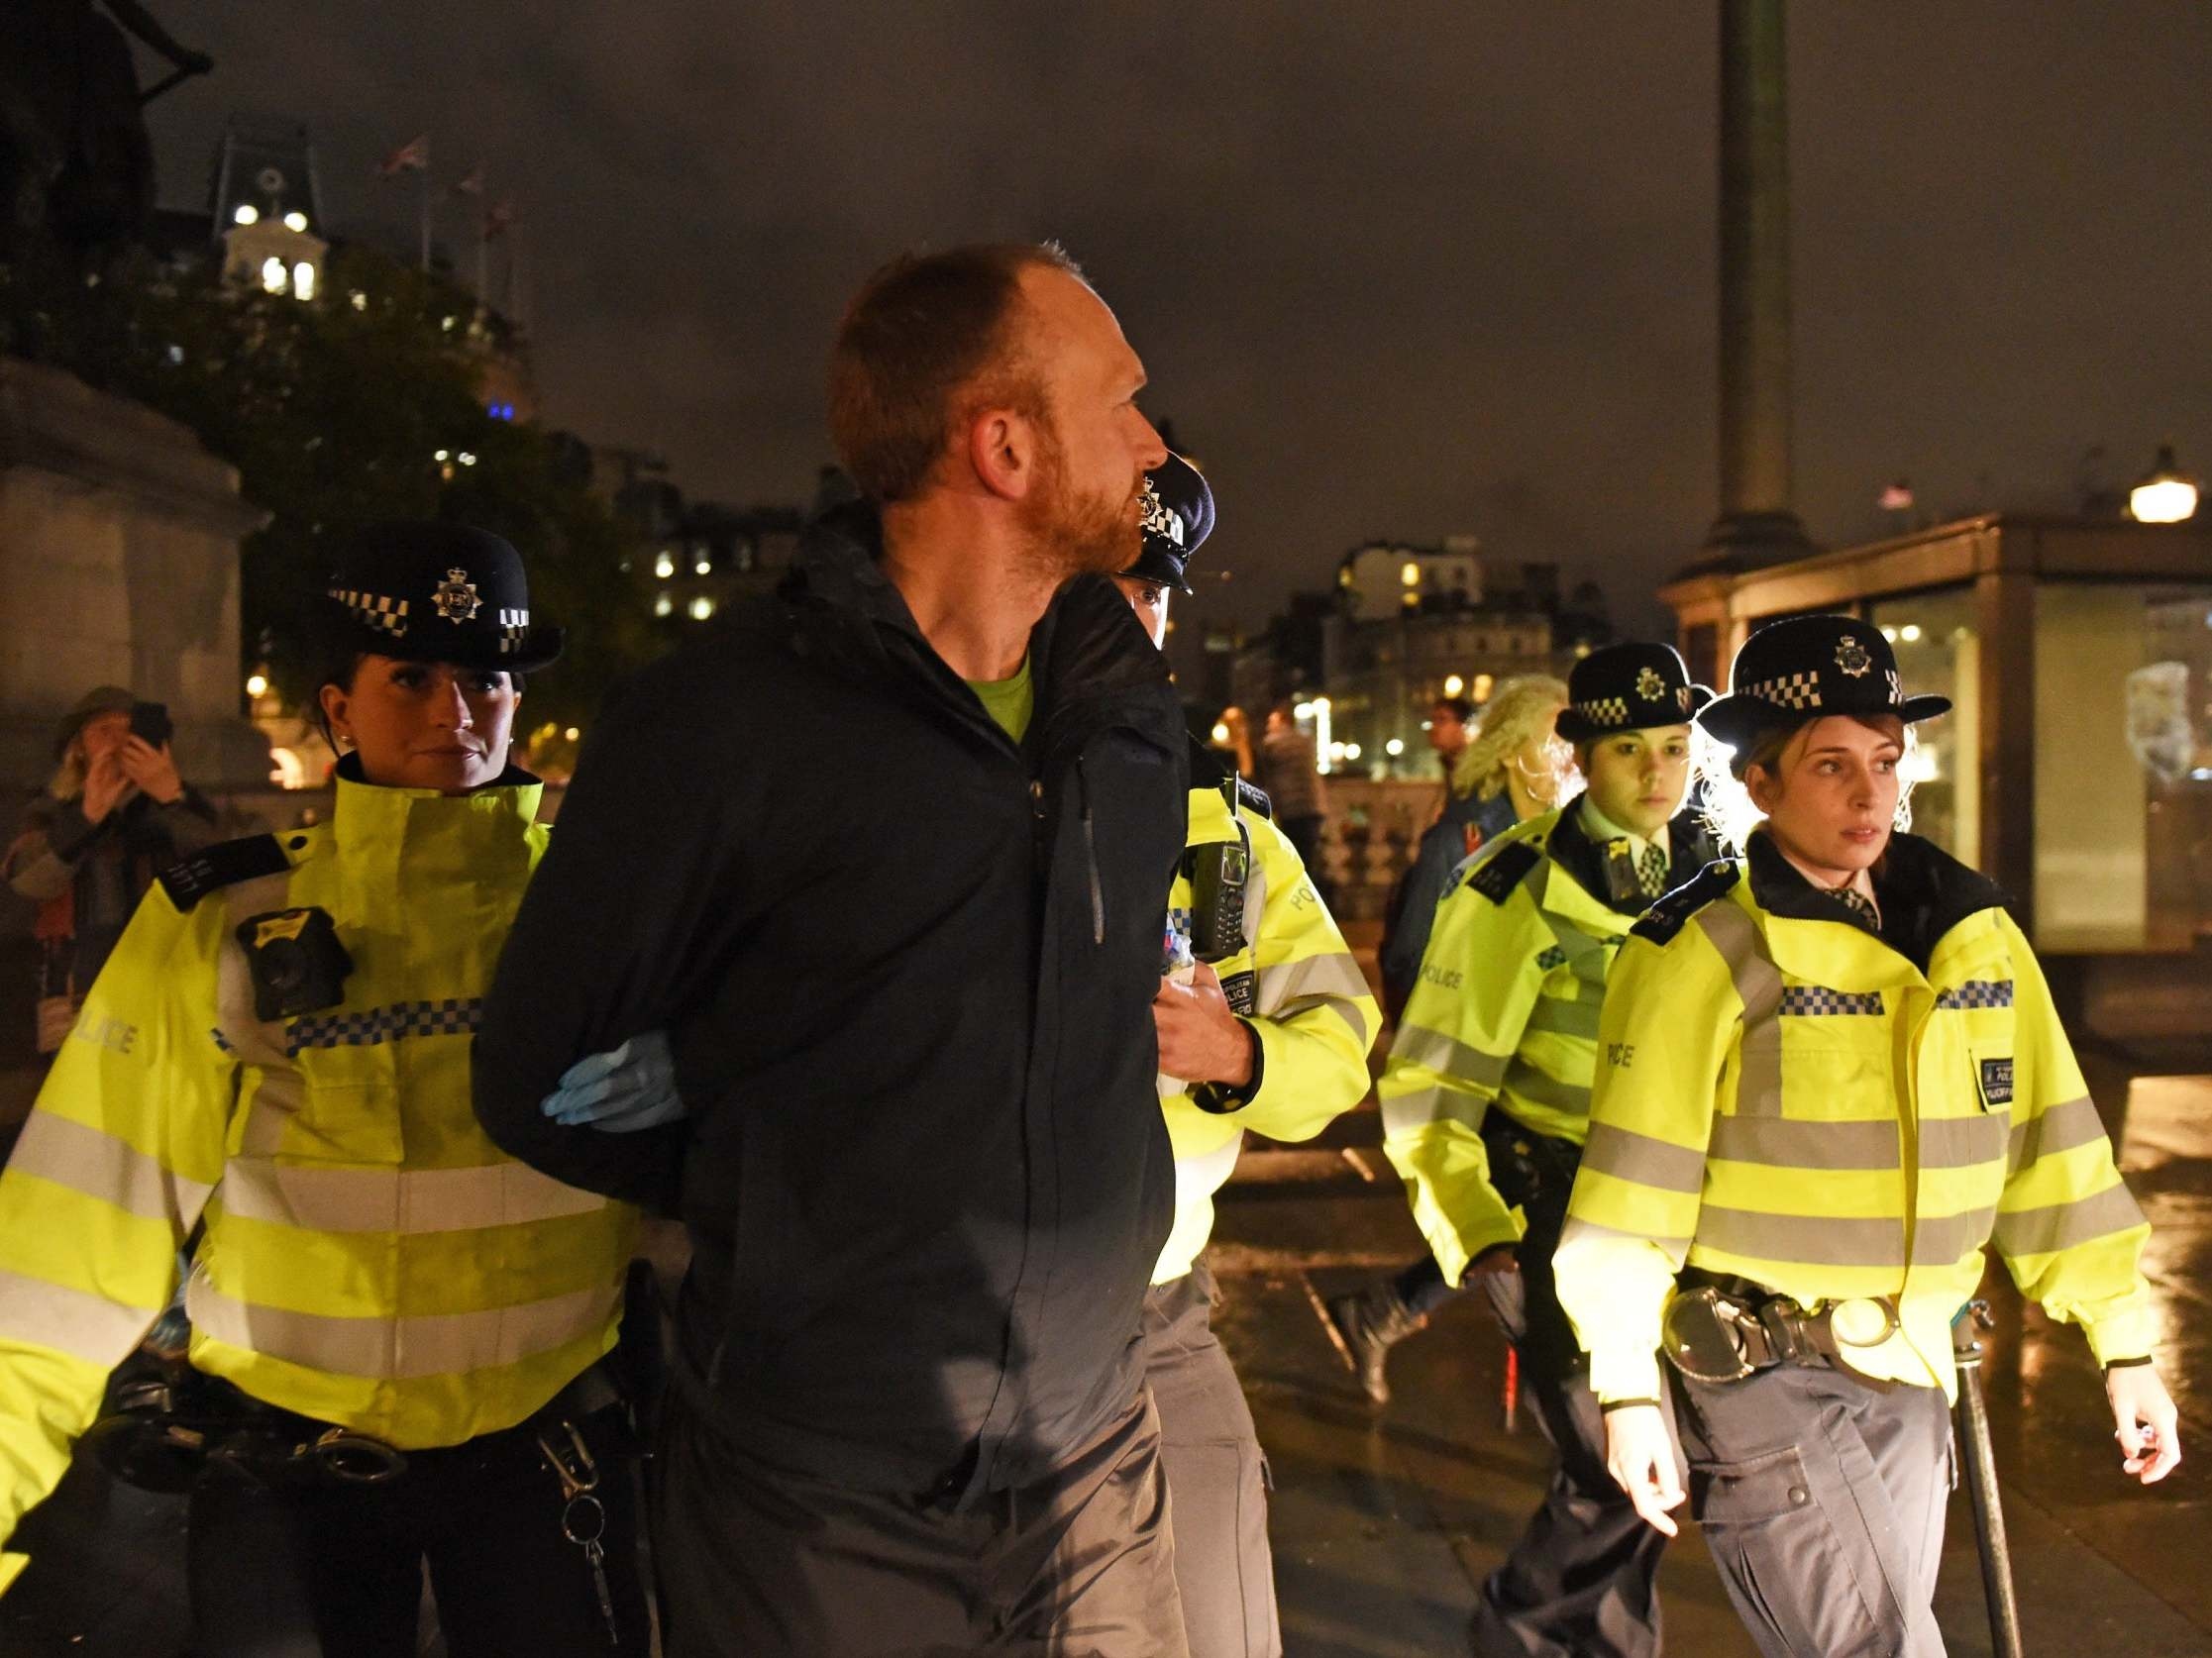 Extinction Rebellion protesters banned from London by police after 'disrupting' City workers